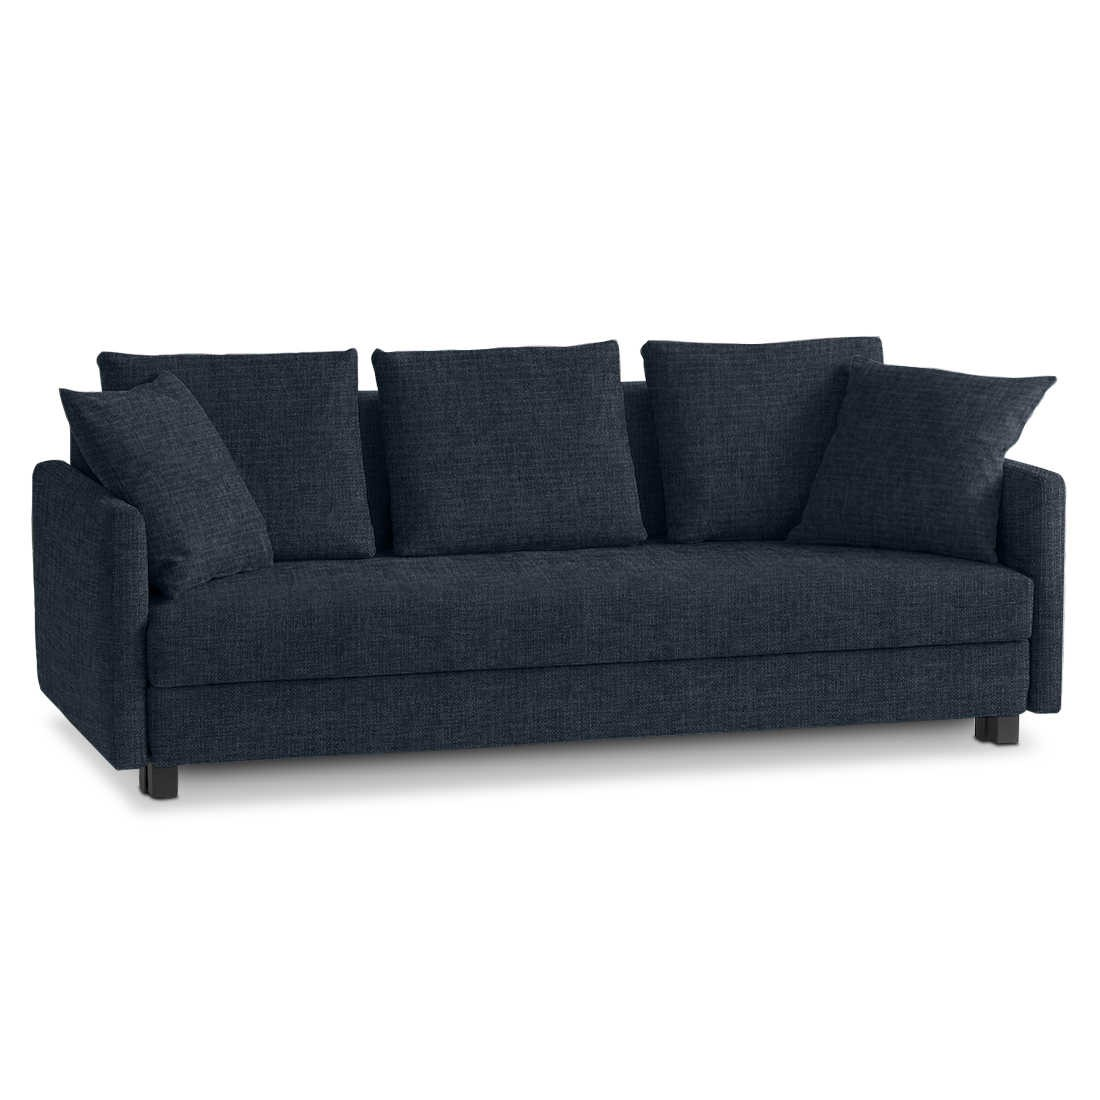 franz fertig schlafsofa jester blau stoff online kaufen. Black Bedroom Furniture Sets. Home Design Ideas